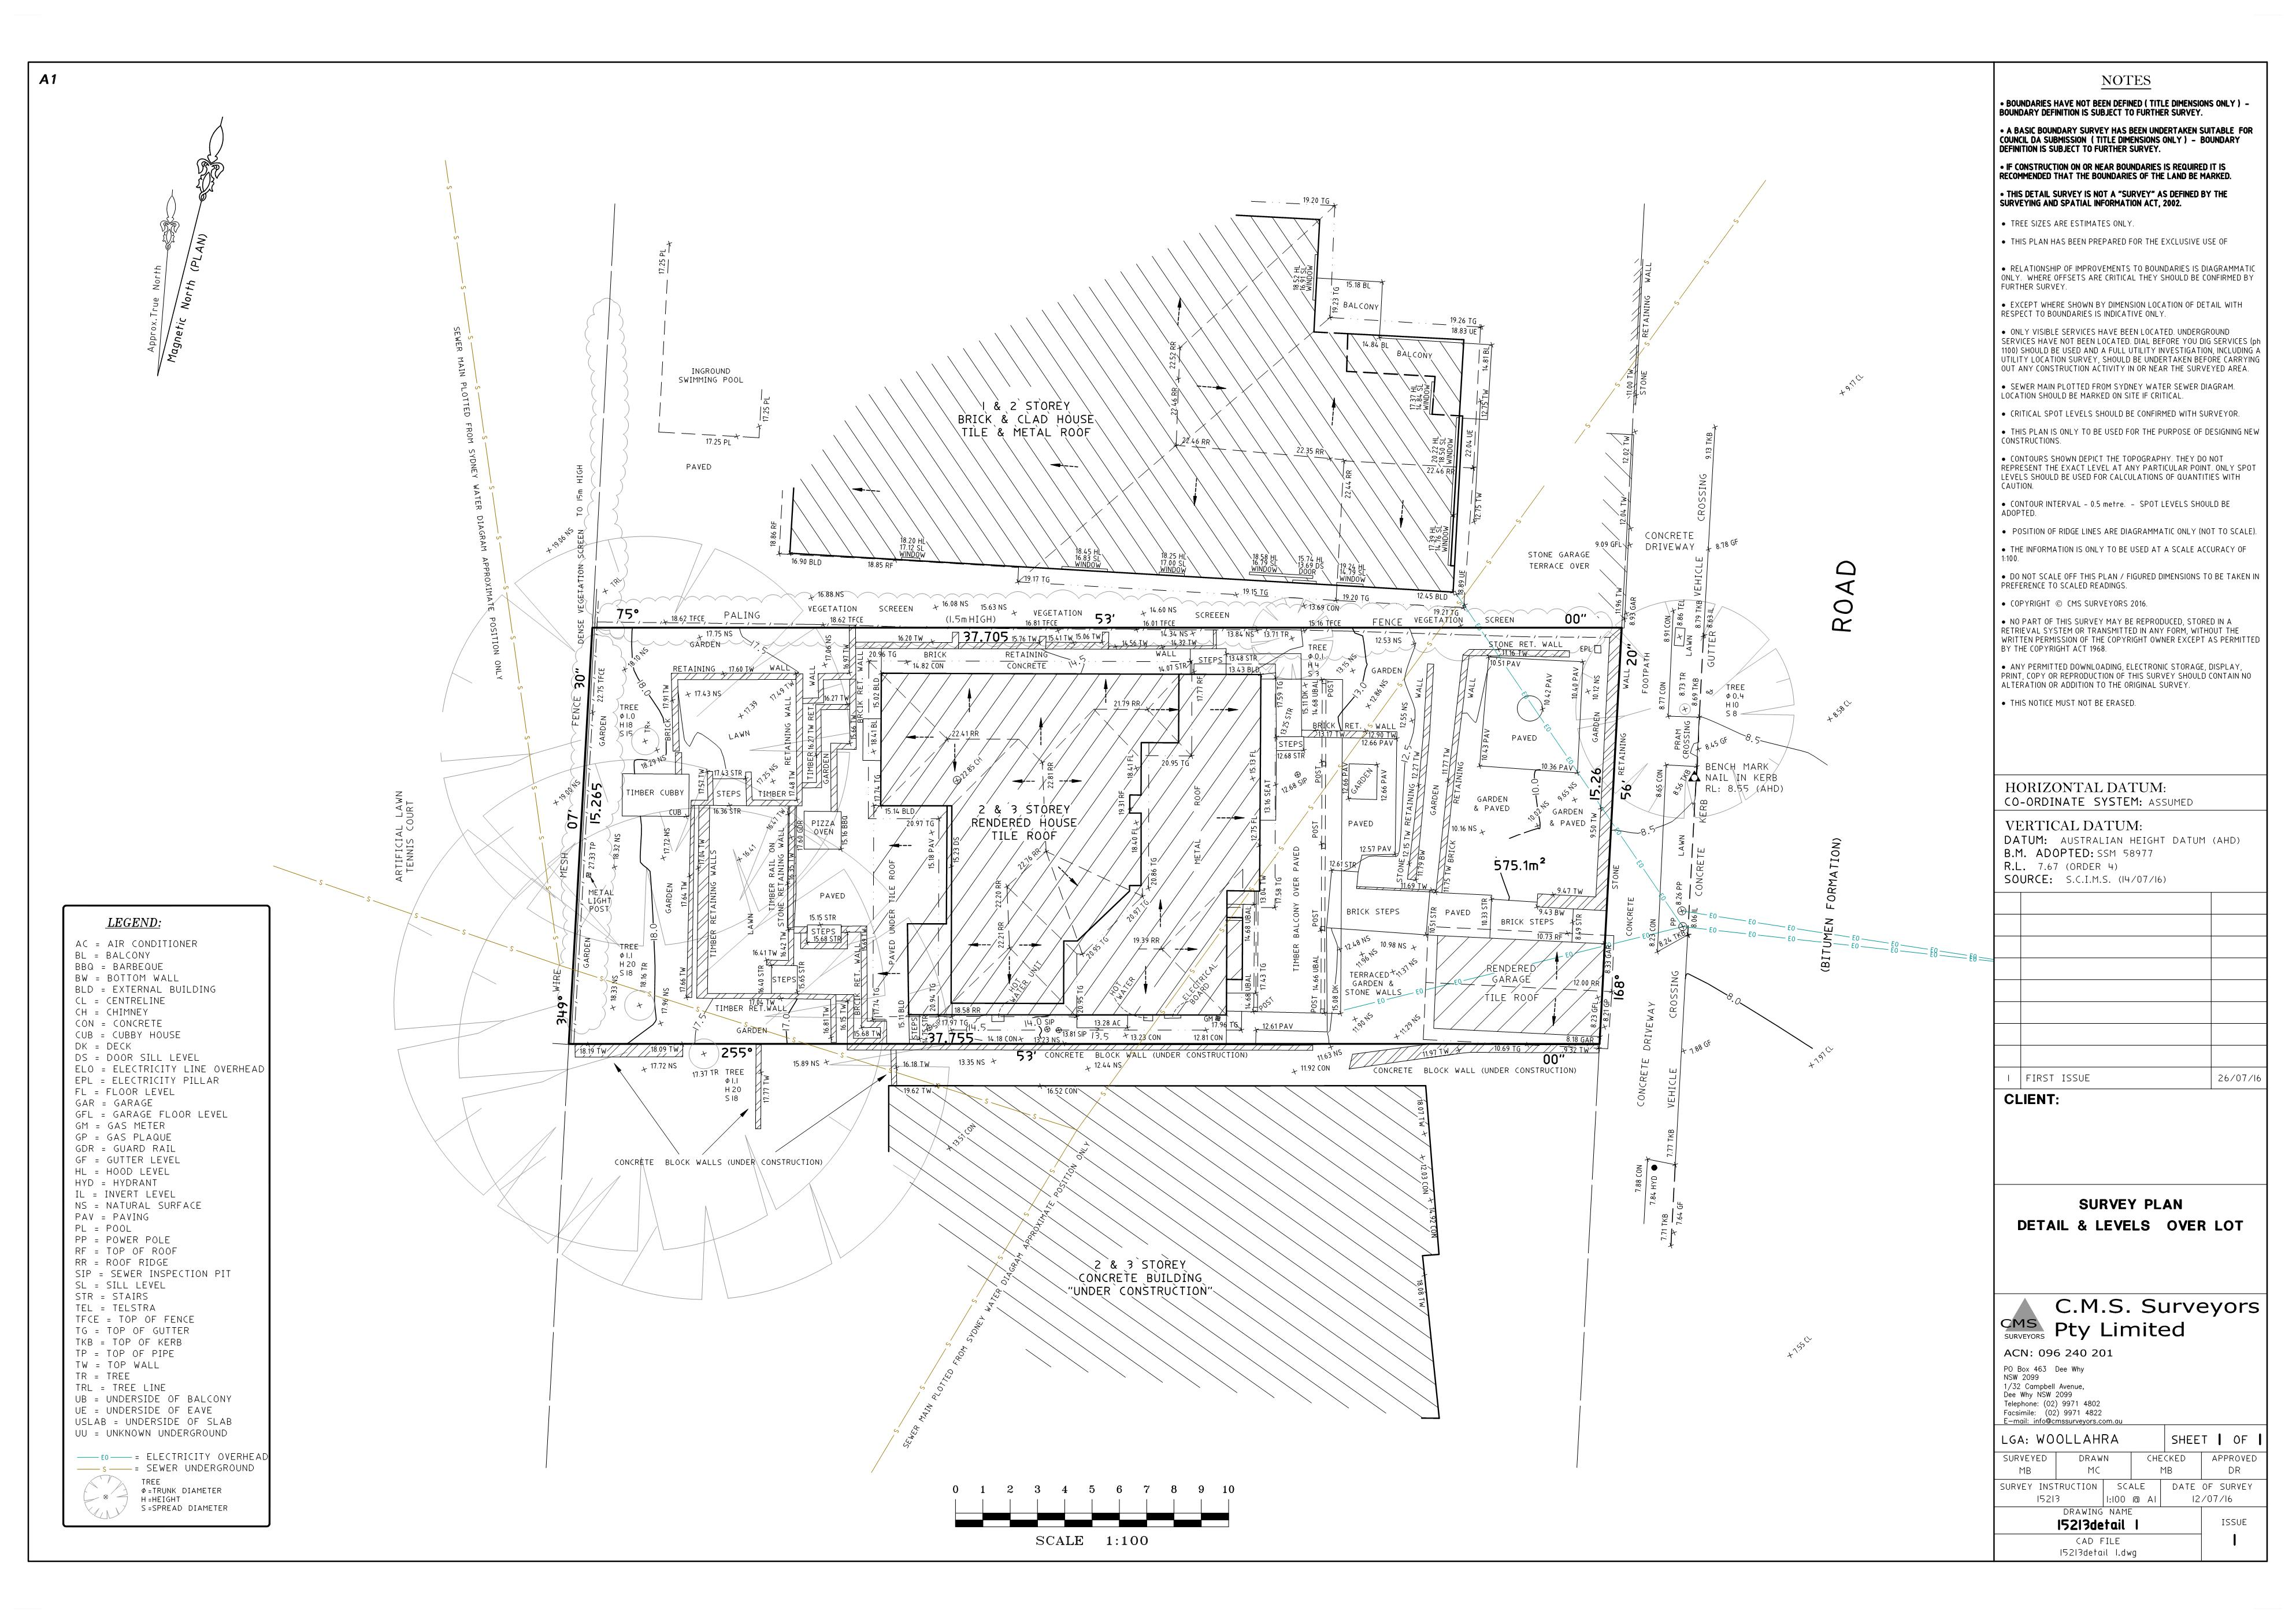 CMS Surveyors Cadastral and Construction Surveyors in Sydney – Site Plan Survey